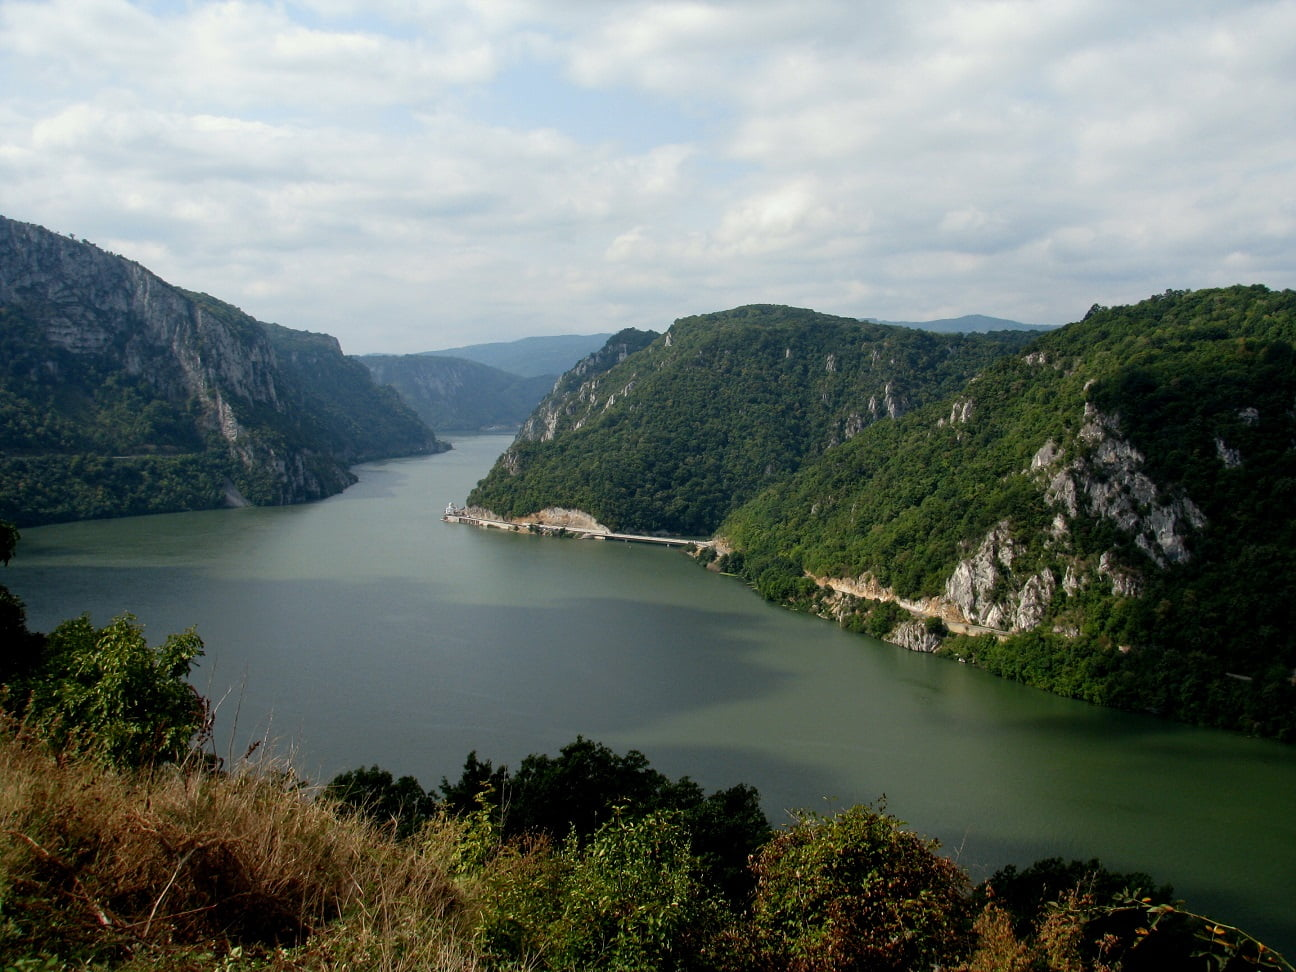 Serbia-travel-Iron-Gate-Danube-Glimpses-of-The-World